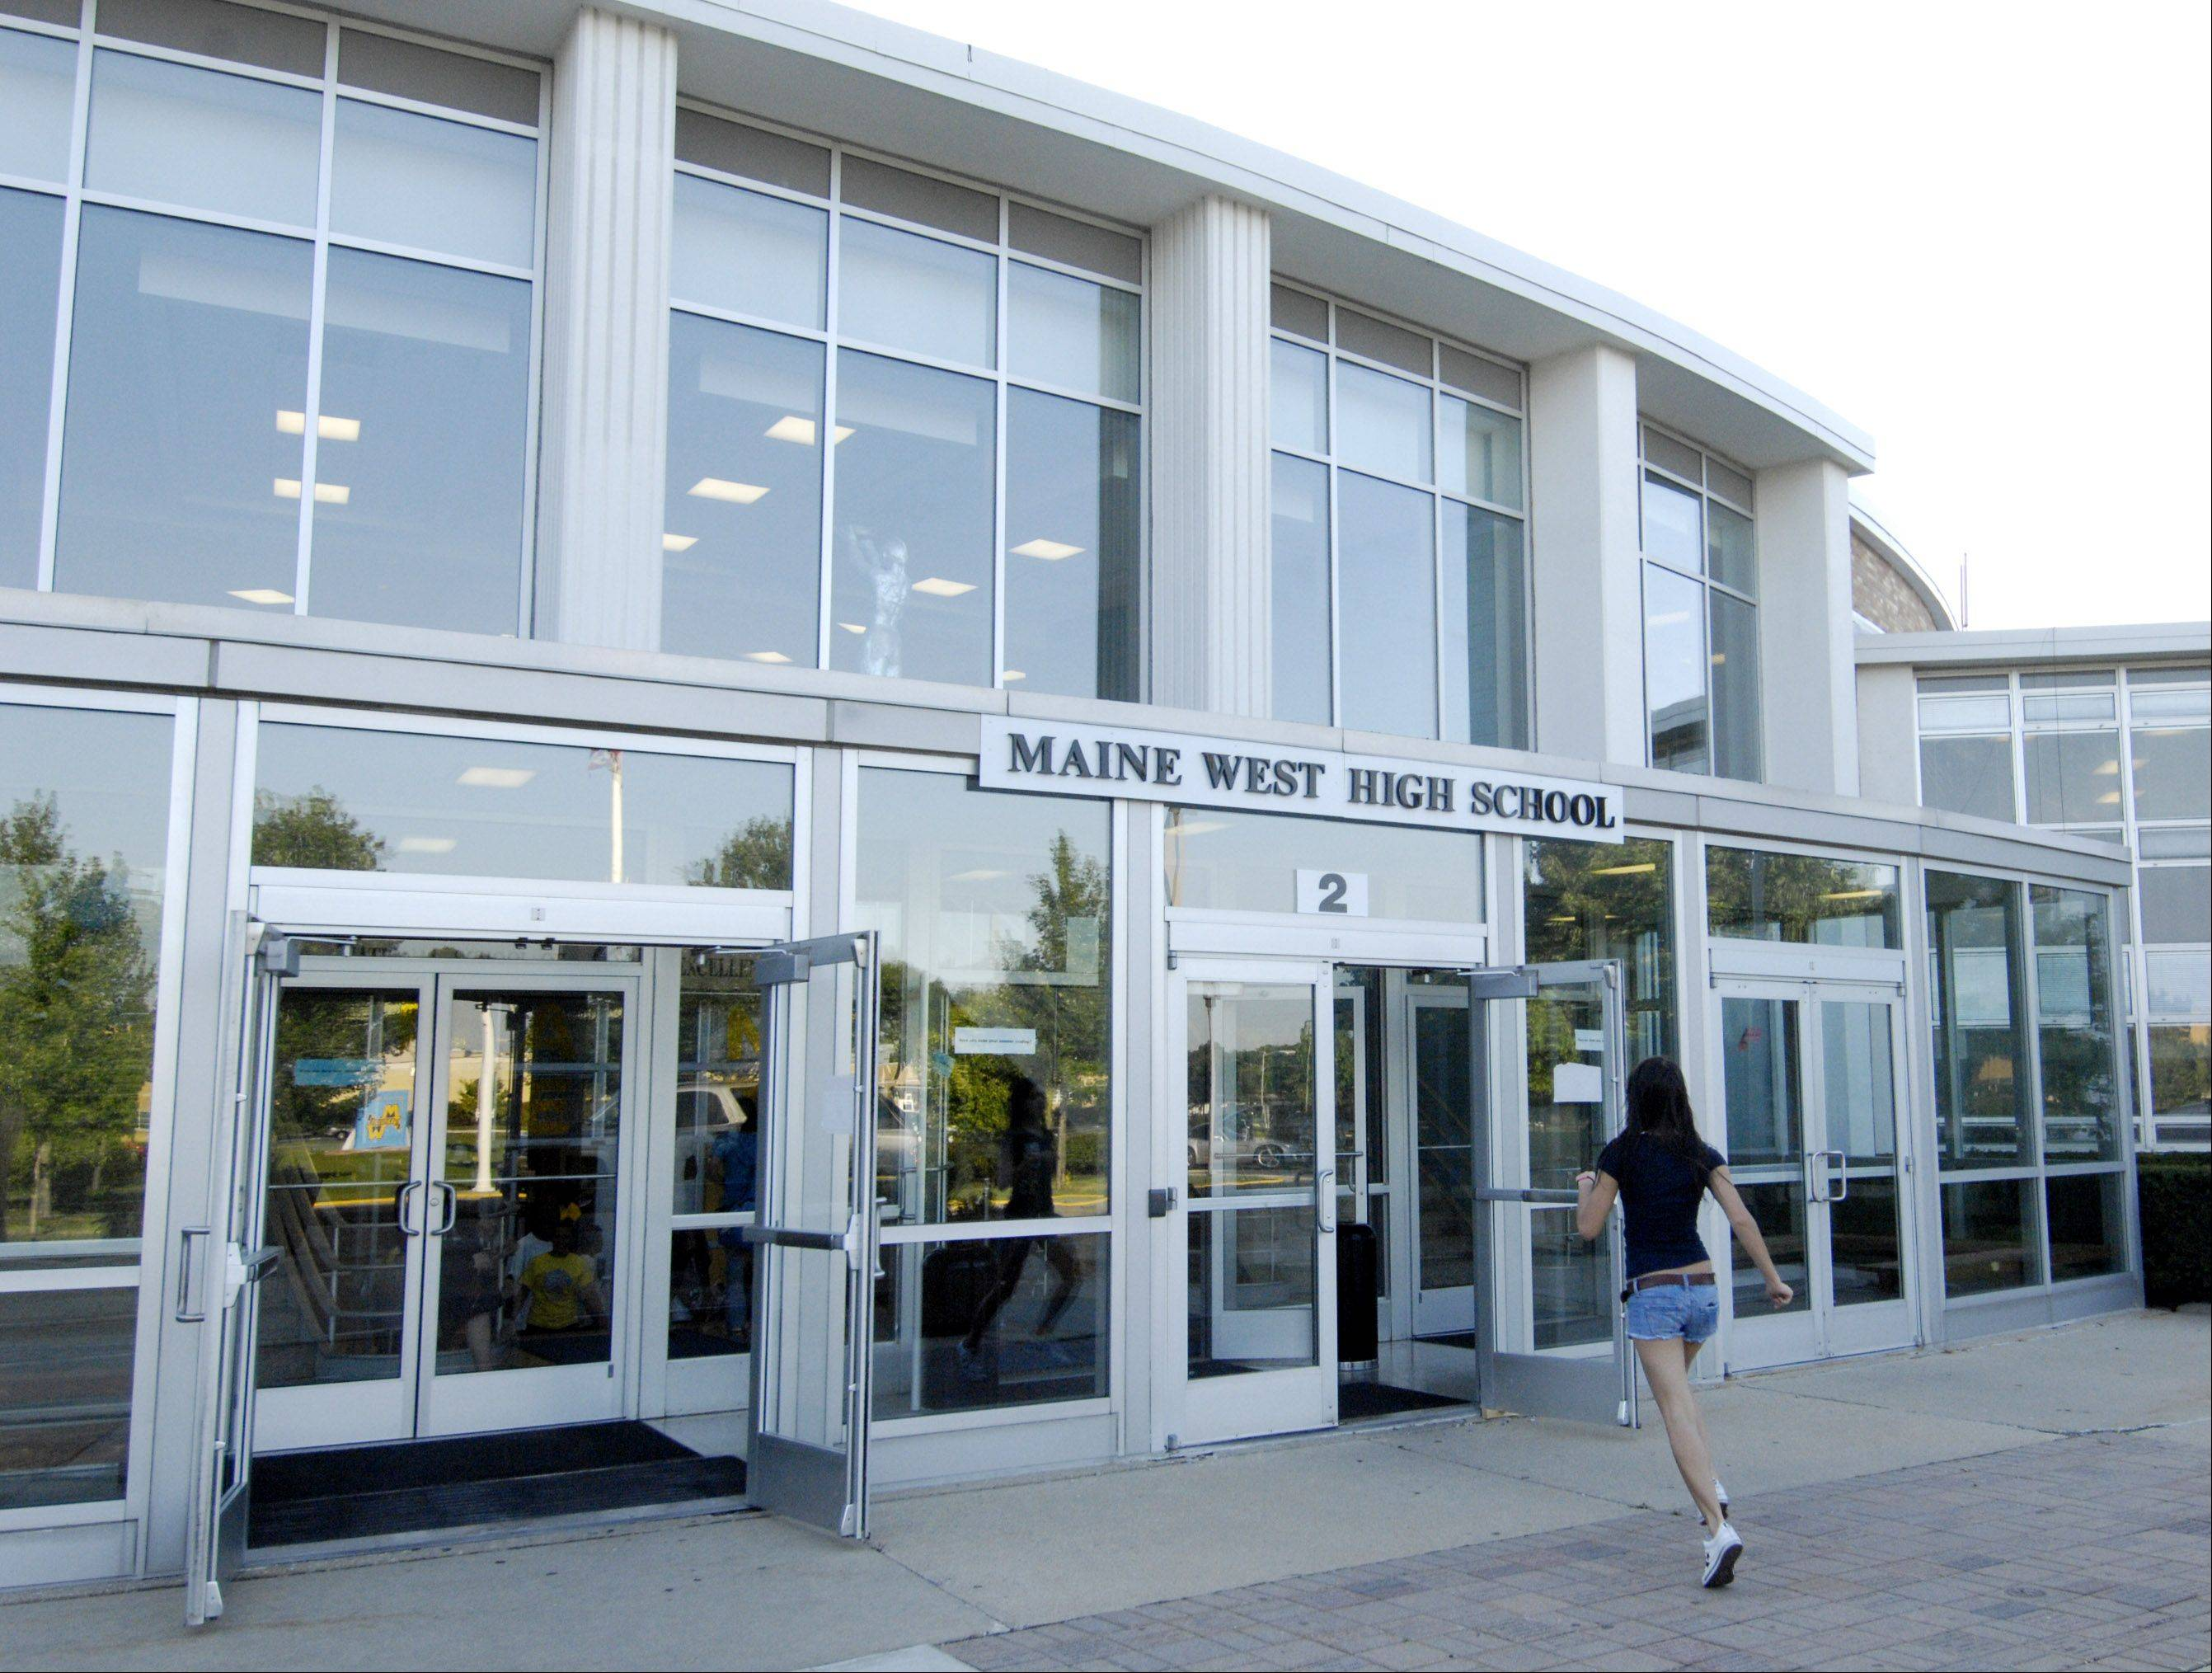 District 207 says 2008 Maine West hazing case similar to 2012 allegations